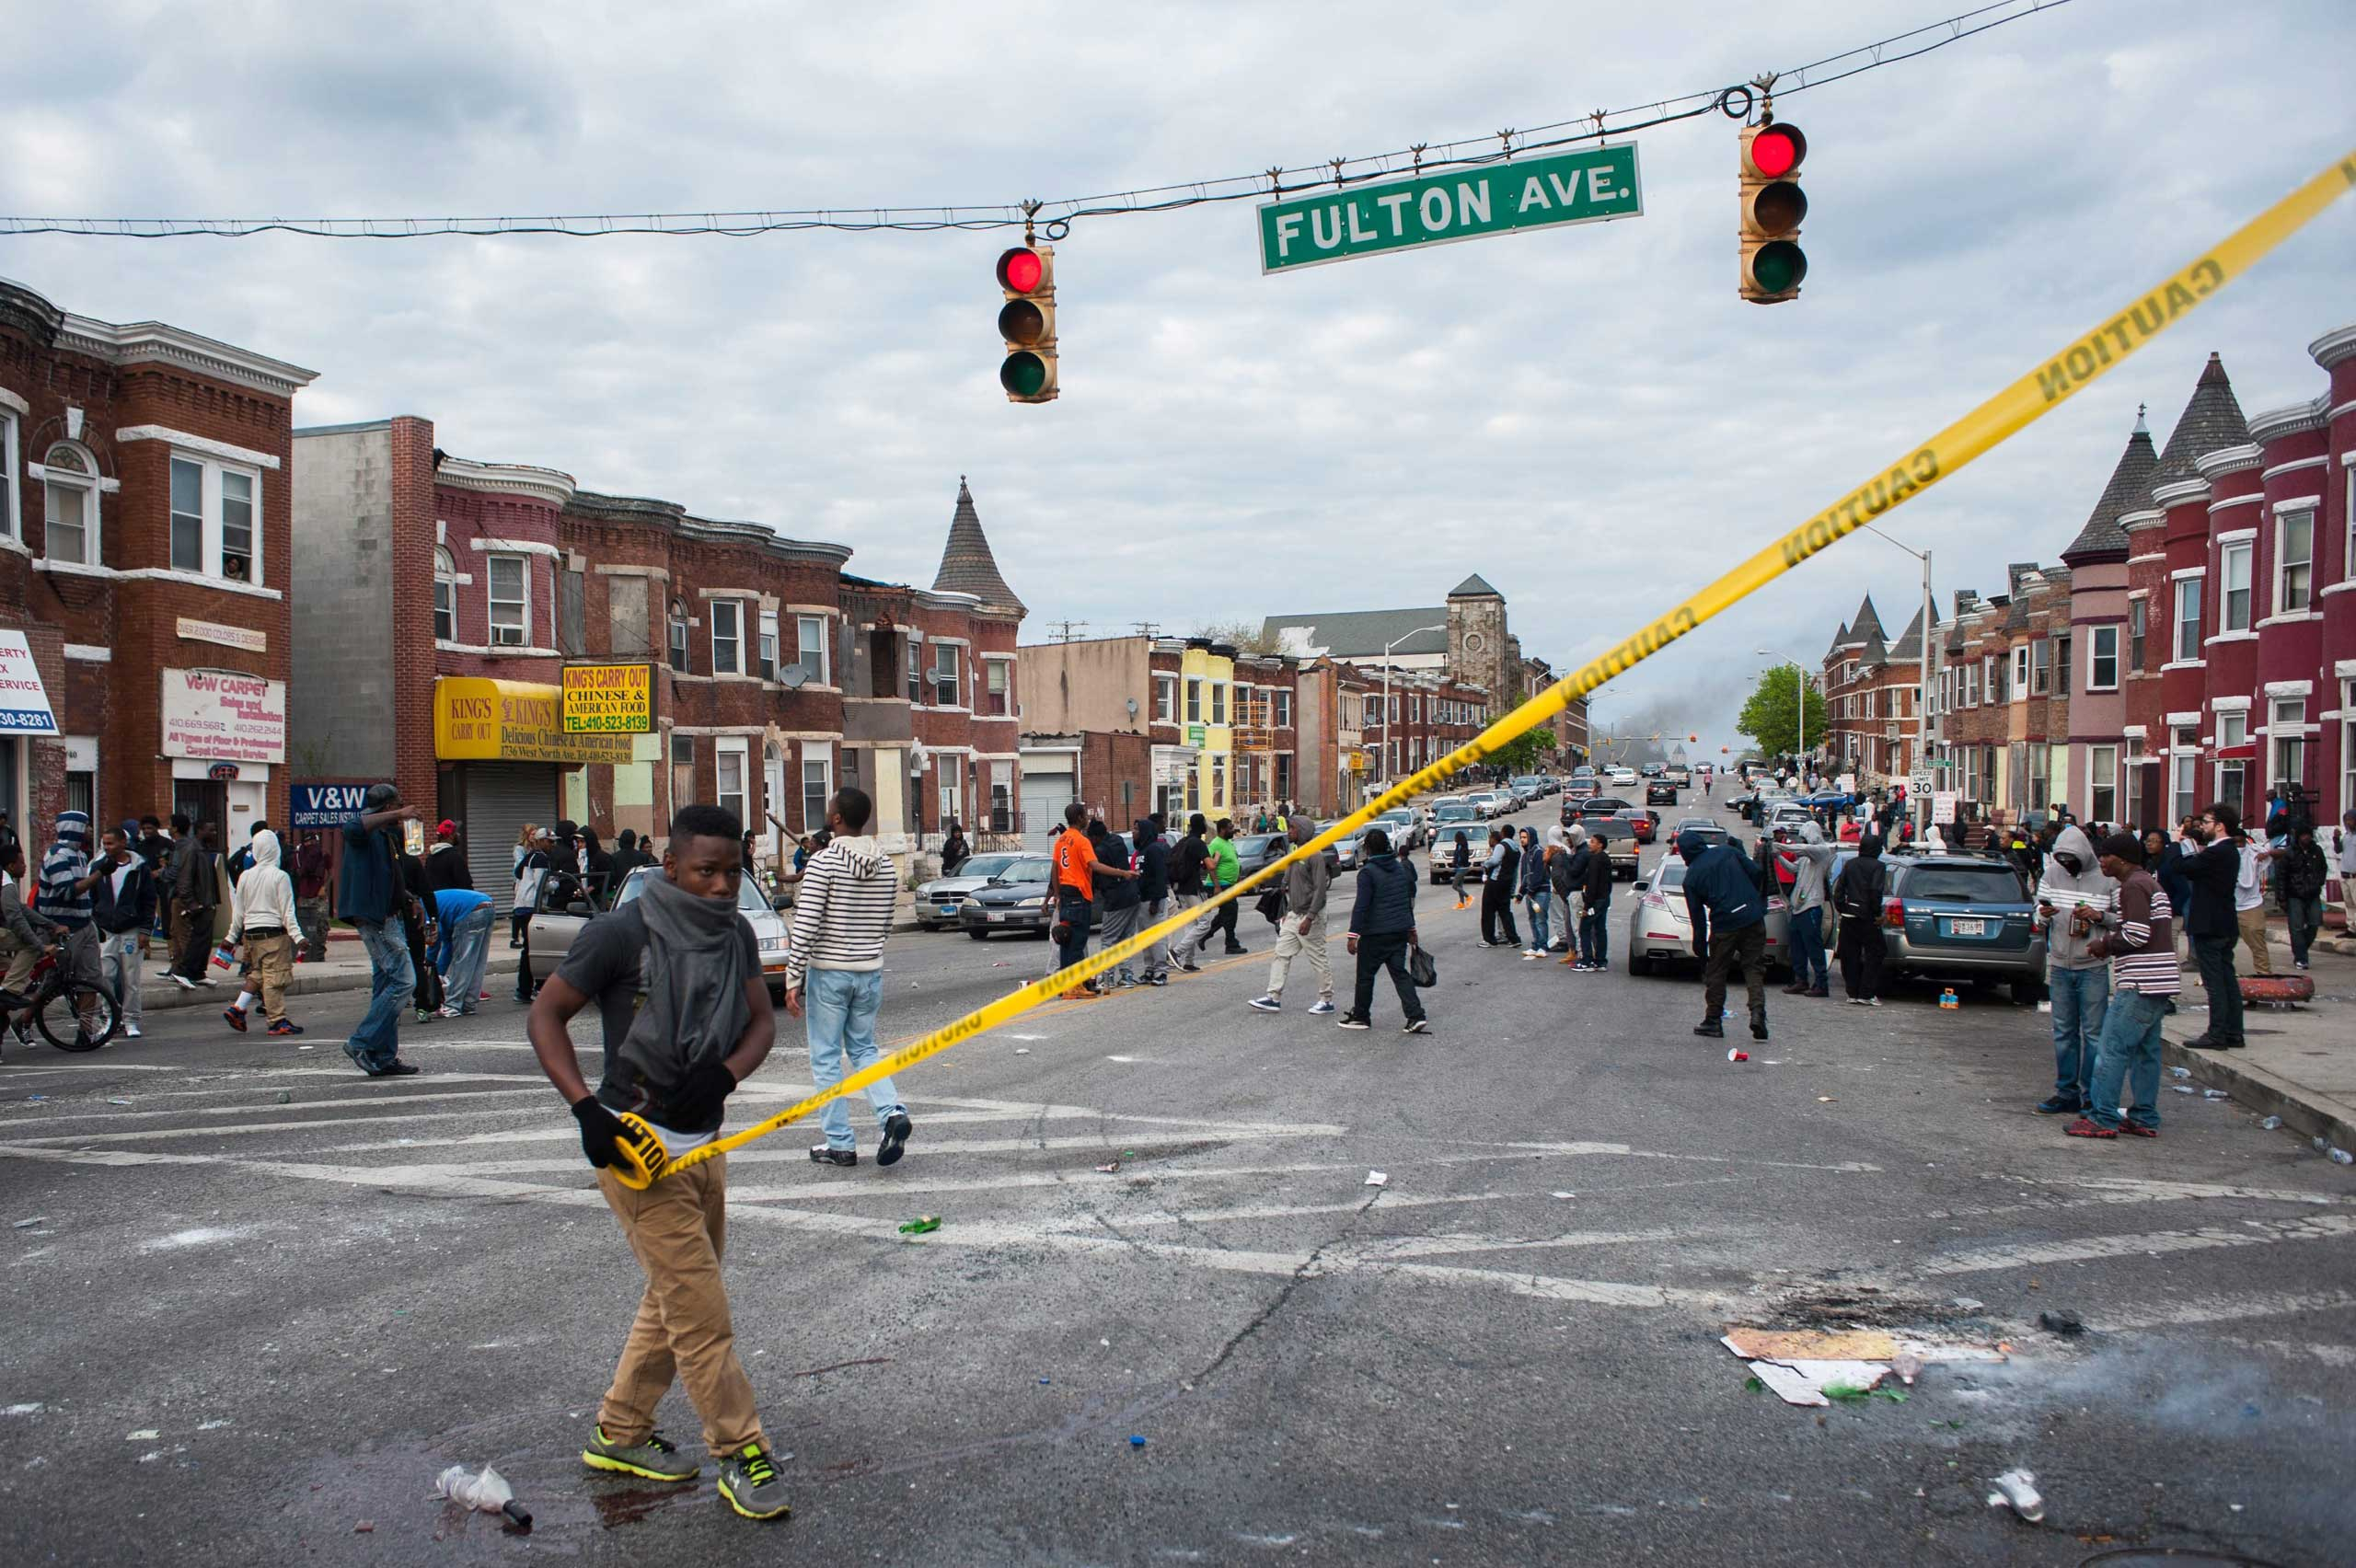 A protestor unrolls police caution tape on North Avenue and Fulton Street during a protest for the death of Freddie Gray in Baltimore on April 27, 2015.